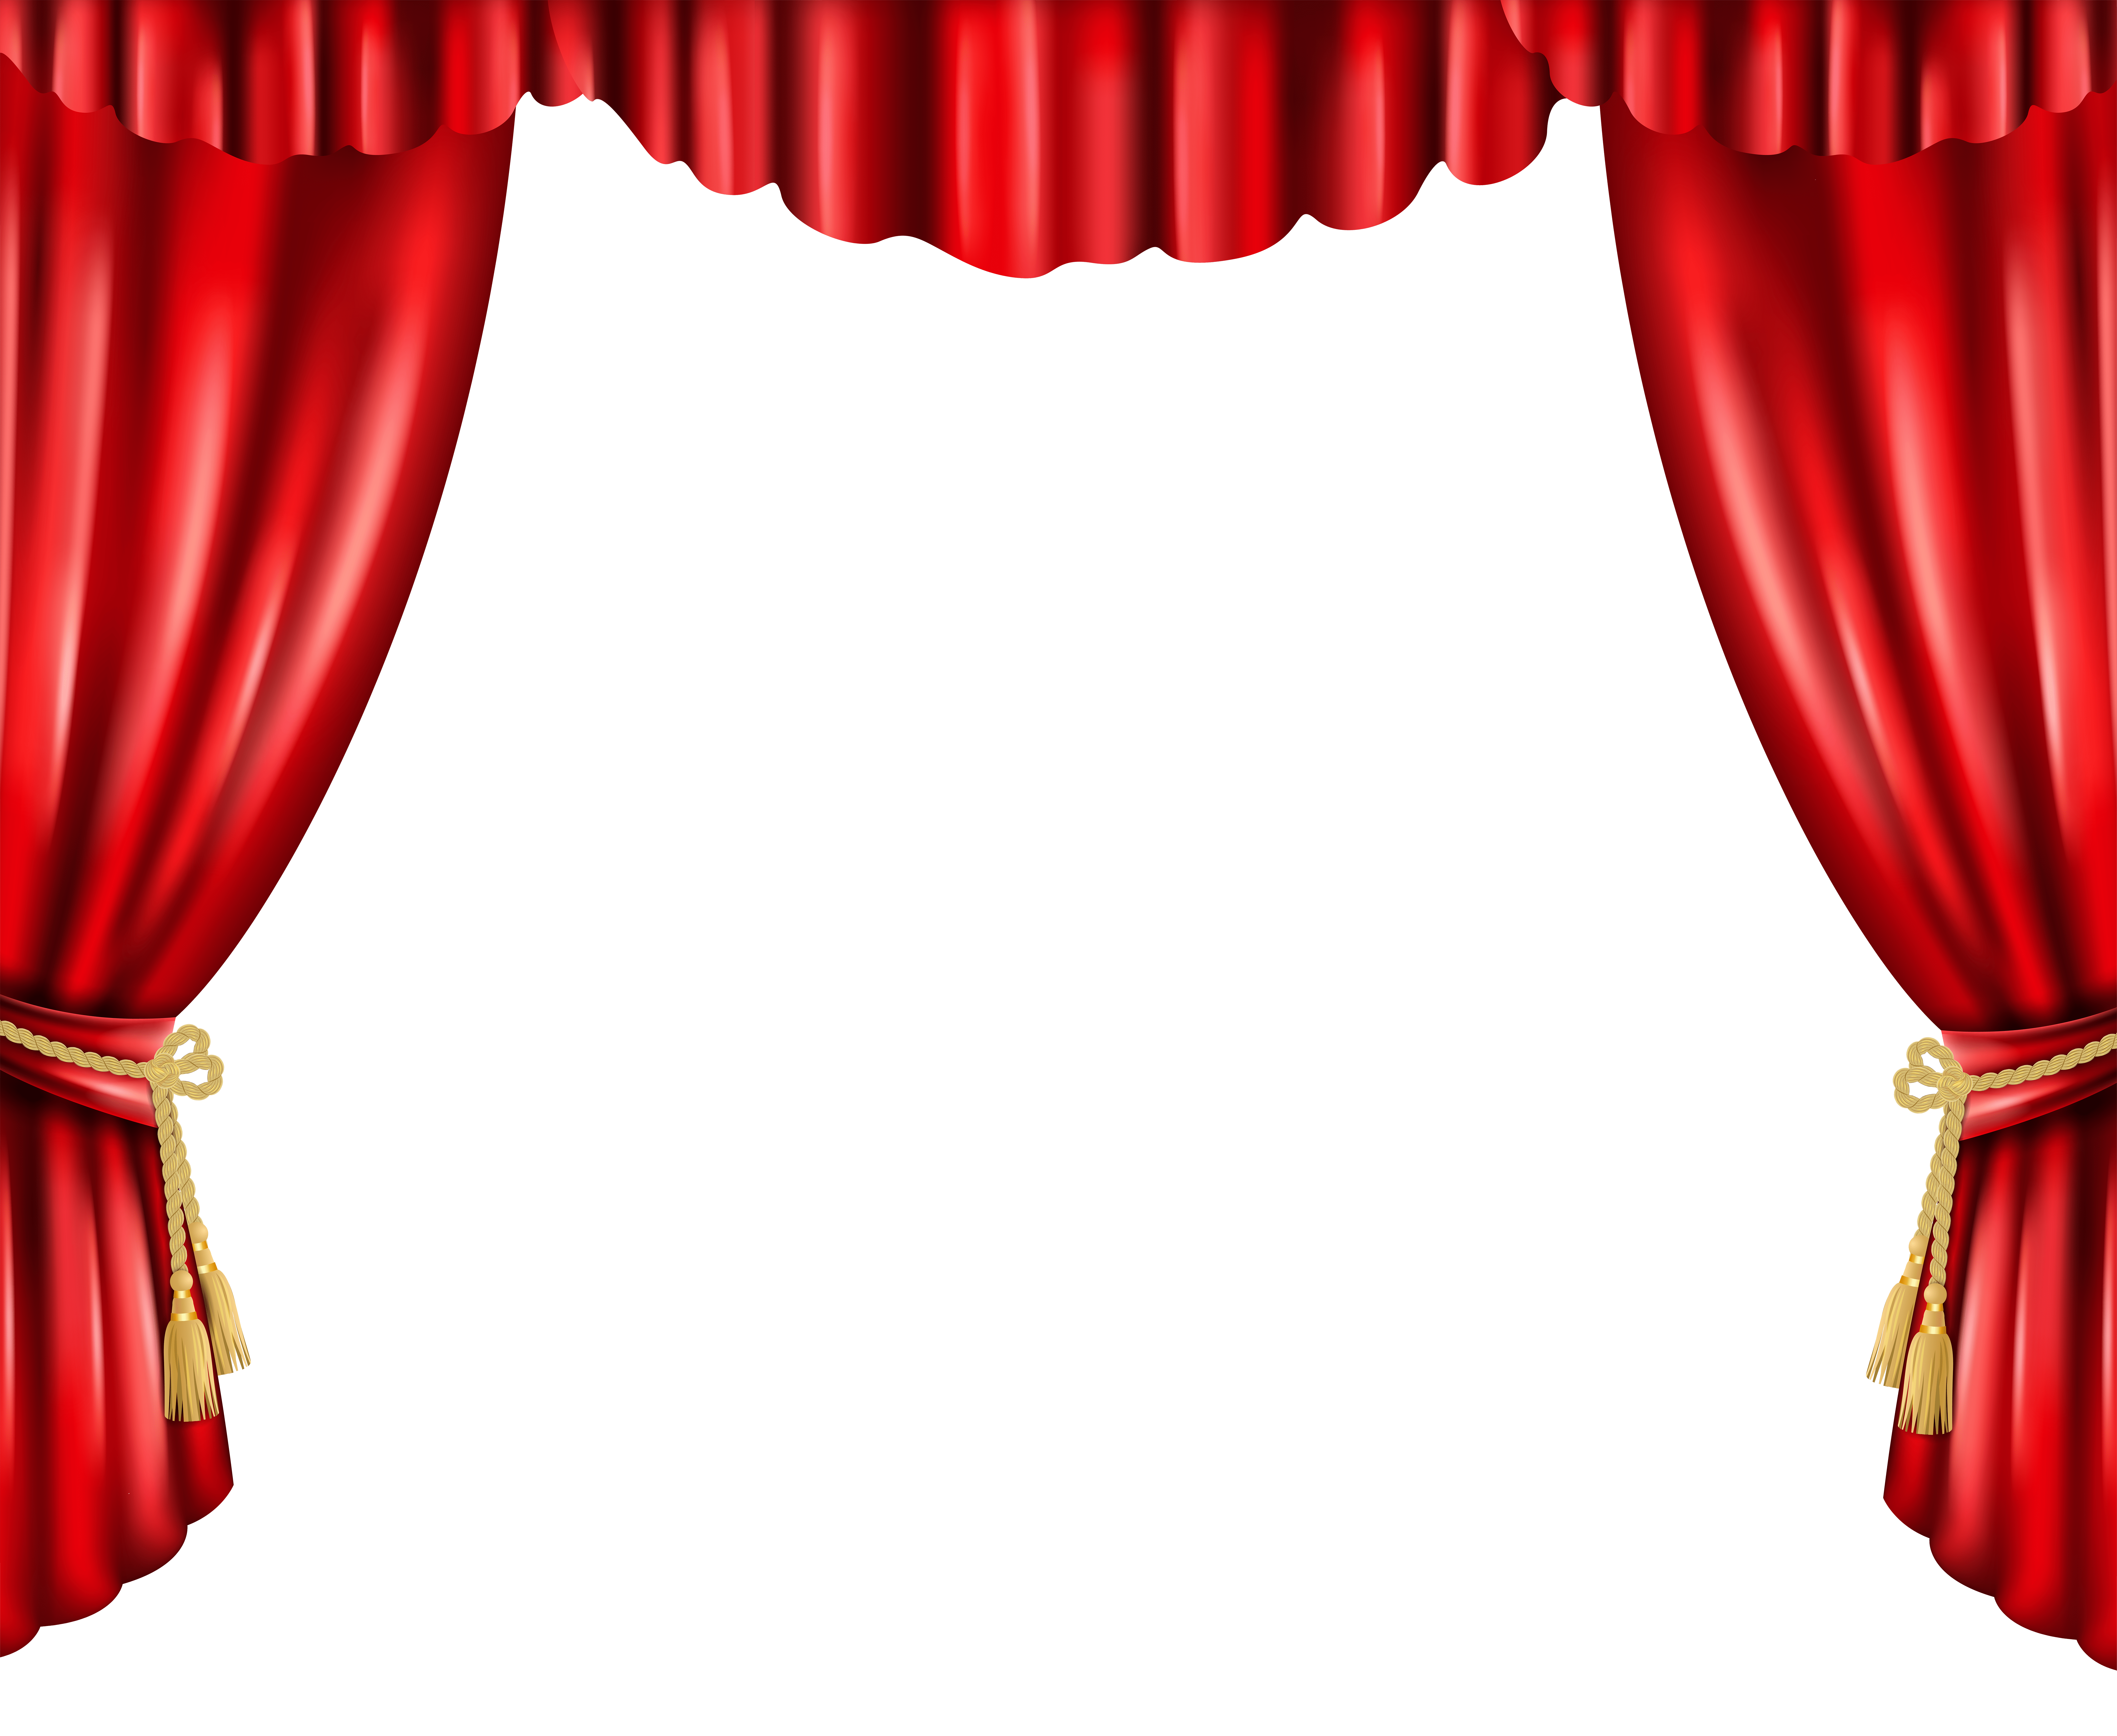 Curtains clipart simple window. Inside decorative bars interior